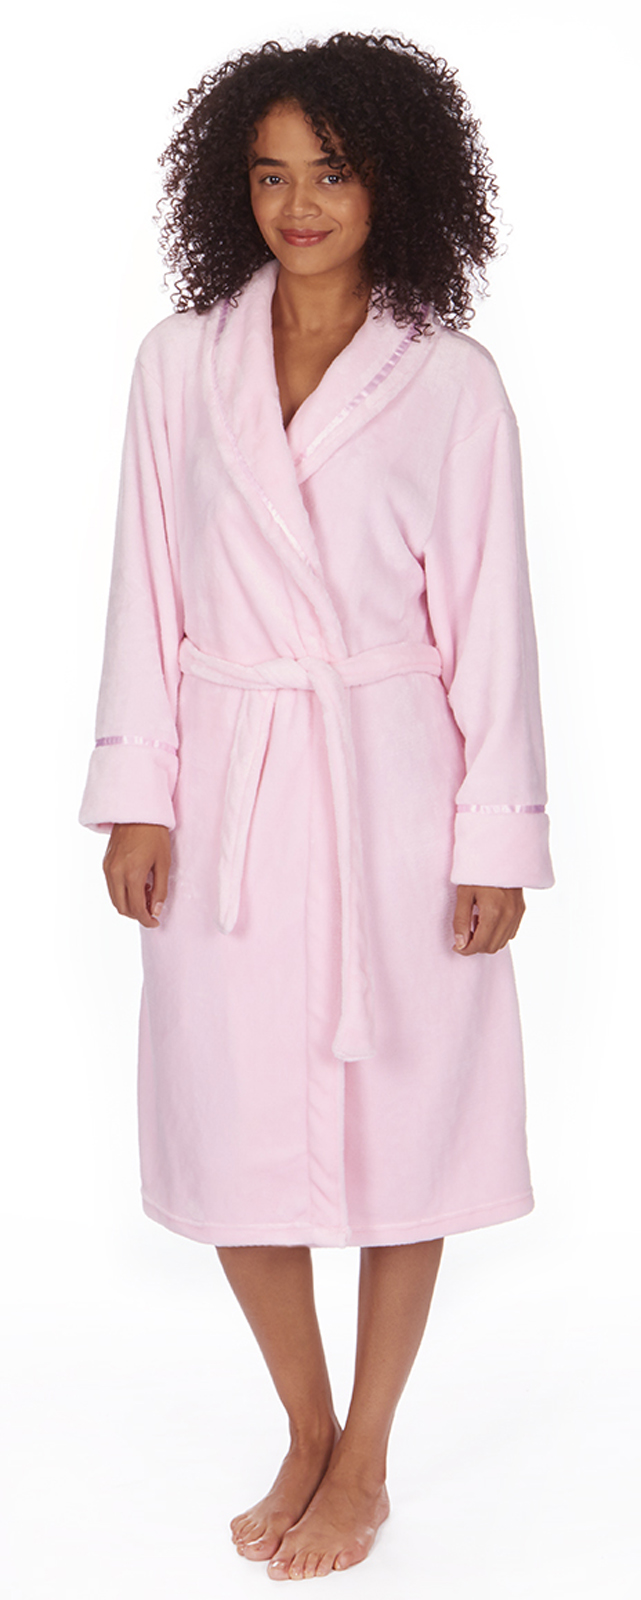 CityComfort Ladies Dressing Gown Shaggy Soft Fleece Women Gowns Robe Bathrobe Loungewear for her. £ - £ Prime. out of 5 stars Aibrou Womens Bridesmaid Robes Short Peacock Blossoms Silk Stain Kimono Robe Dressing Gown. £ - £ Prime. out of 5 stars